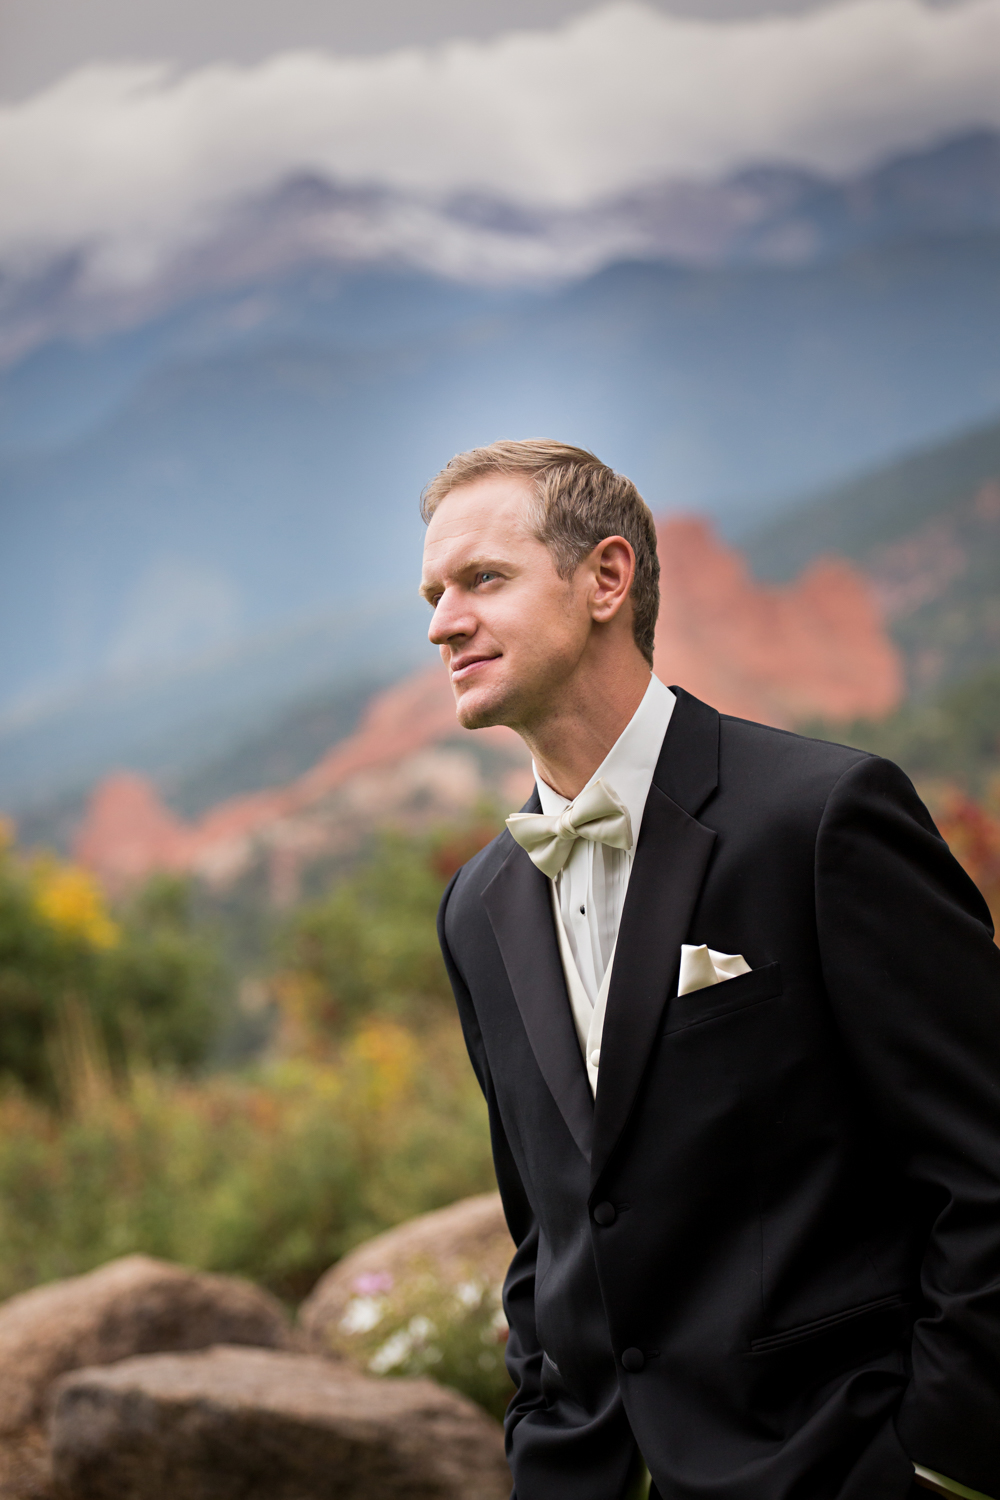 PaigeEden_Weddings_Broadmoor_016.jpg